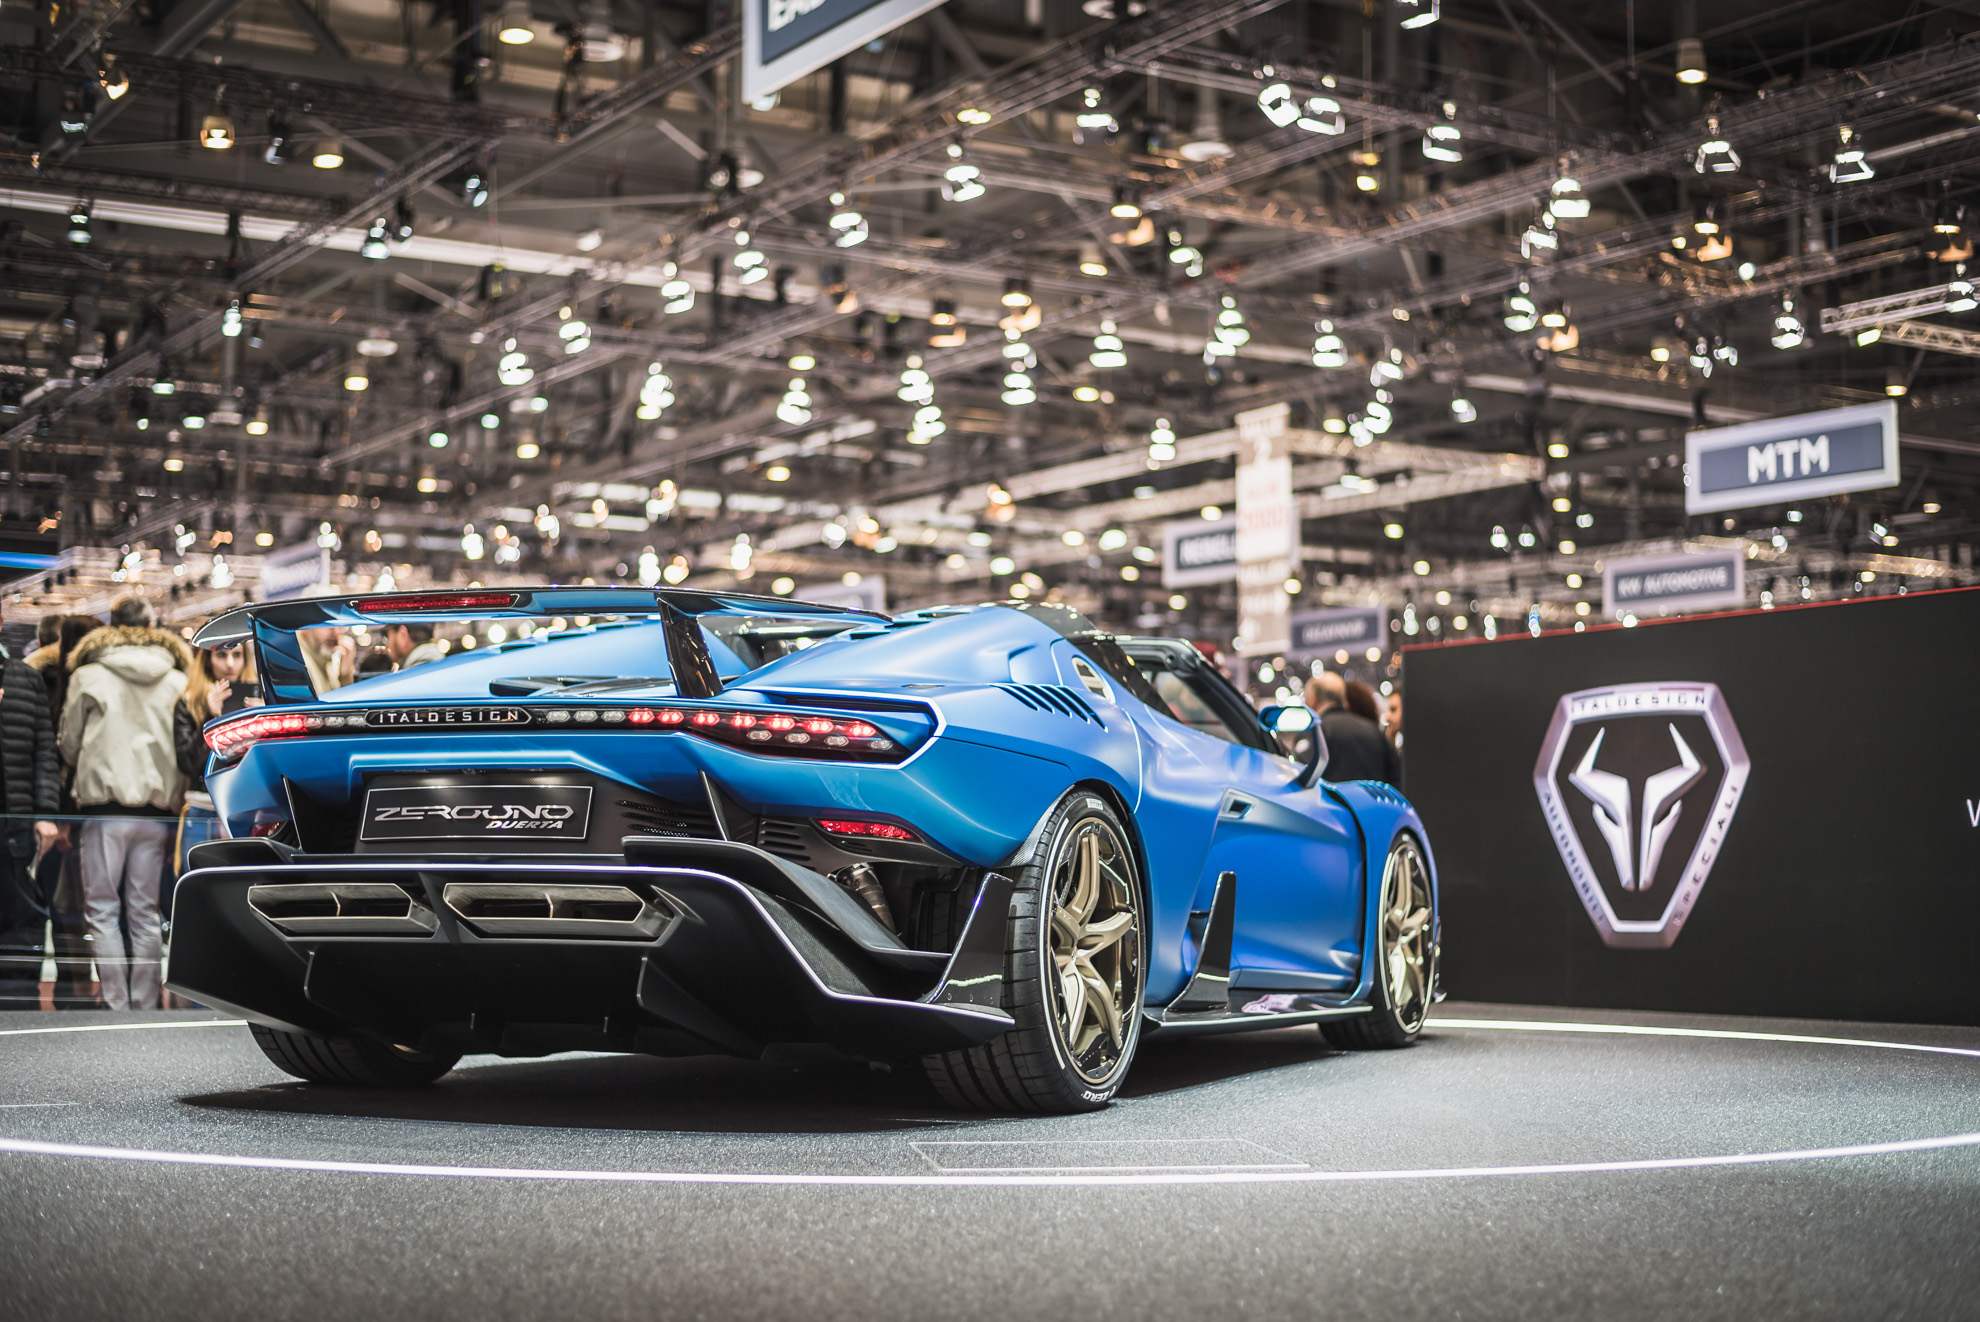 geneva-international-motor-show-igors-sinitsins-34